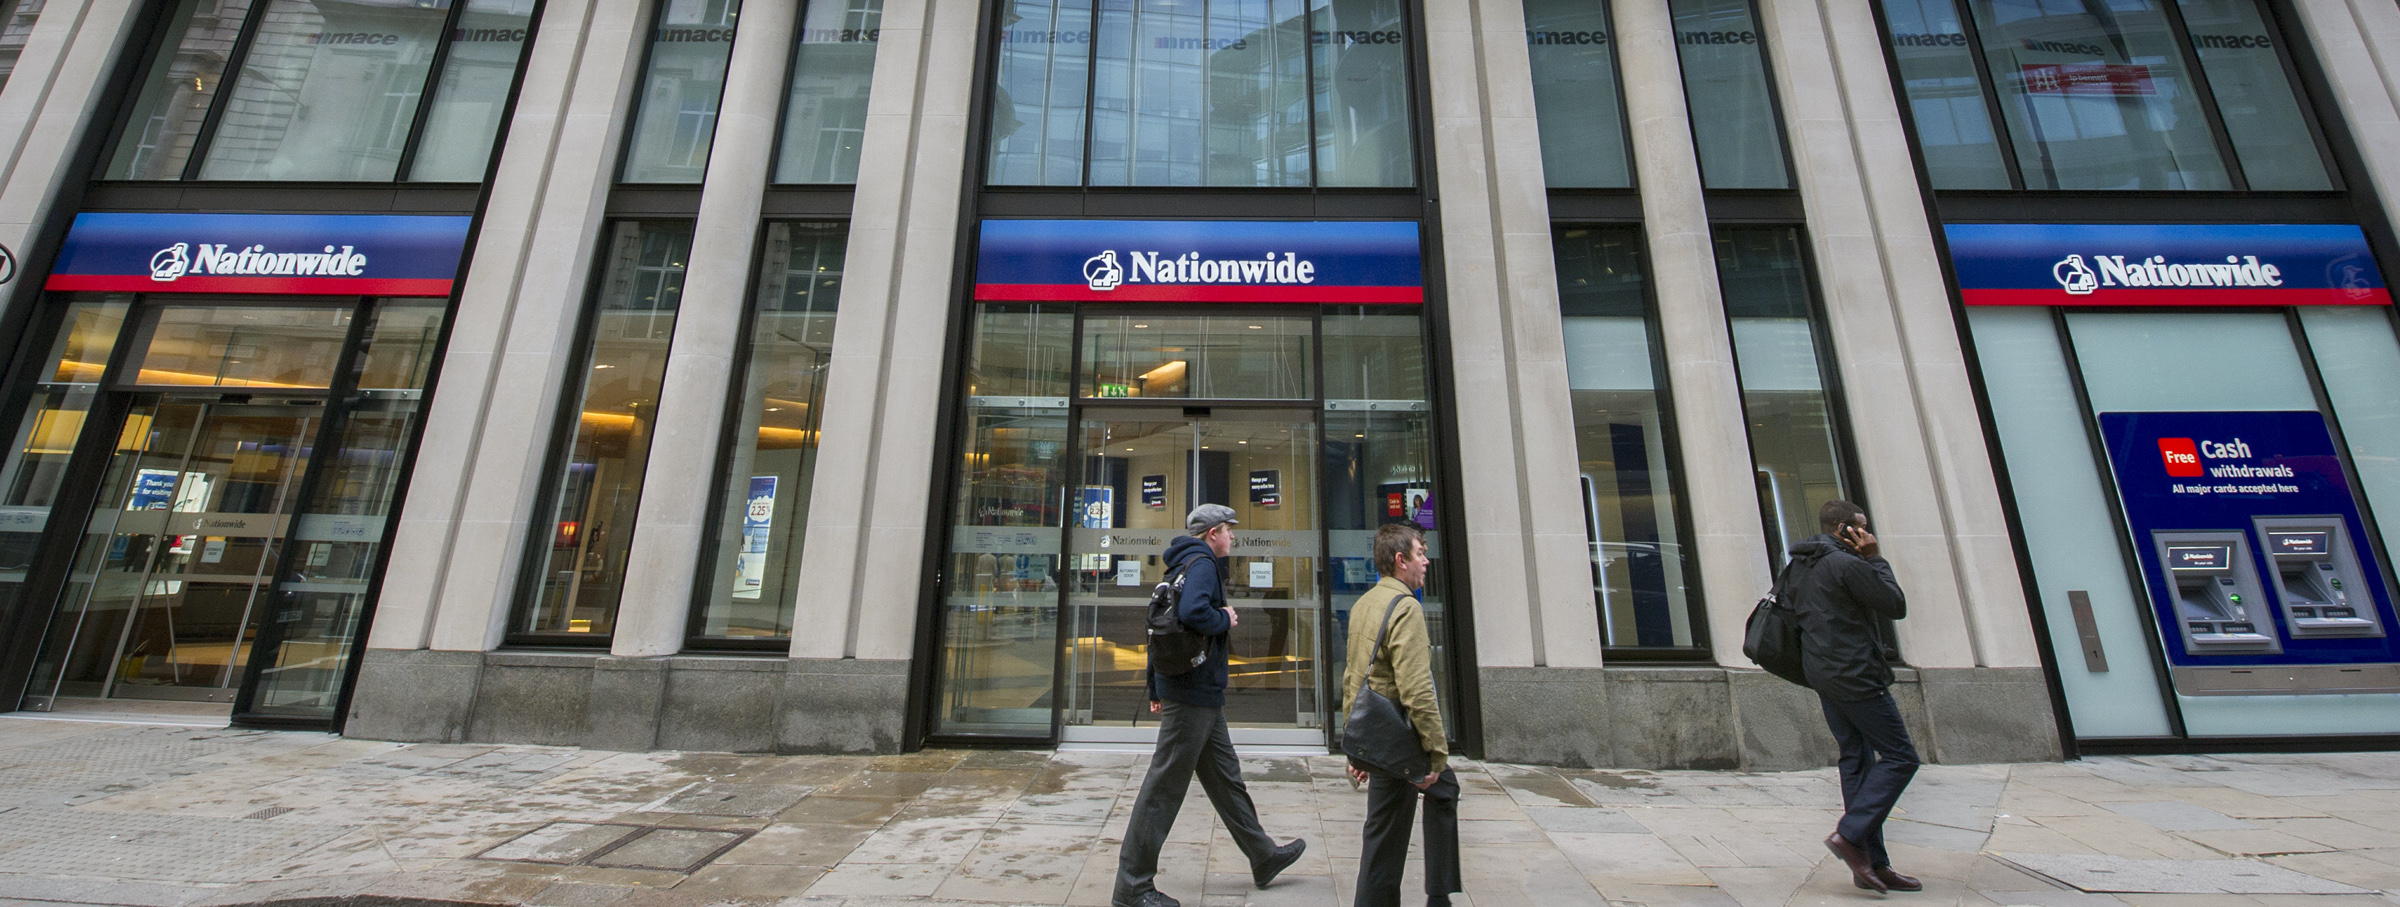 Nationwide comes to the heart of the City in the form of a new branch in Threadneedle Street. (22/4/13) Credit: Professional Images